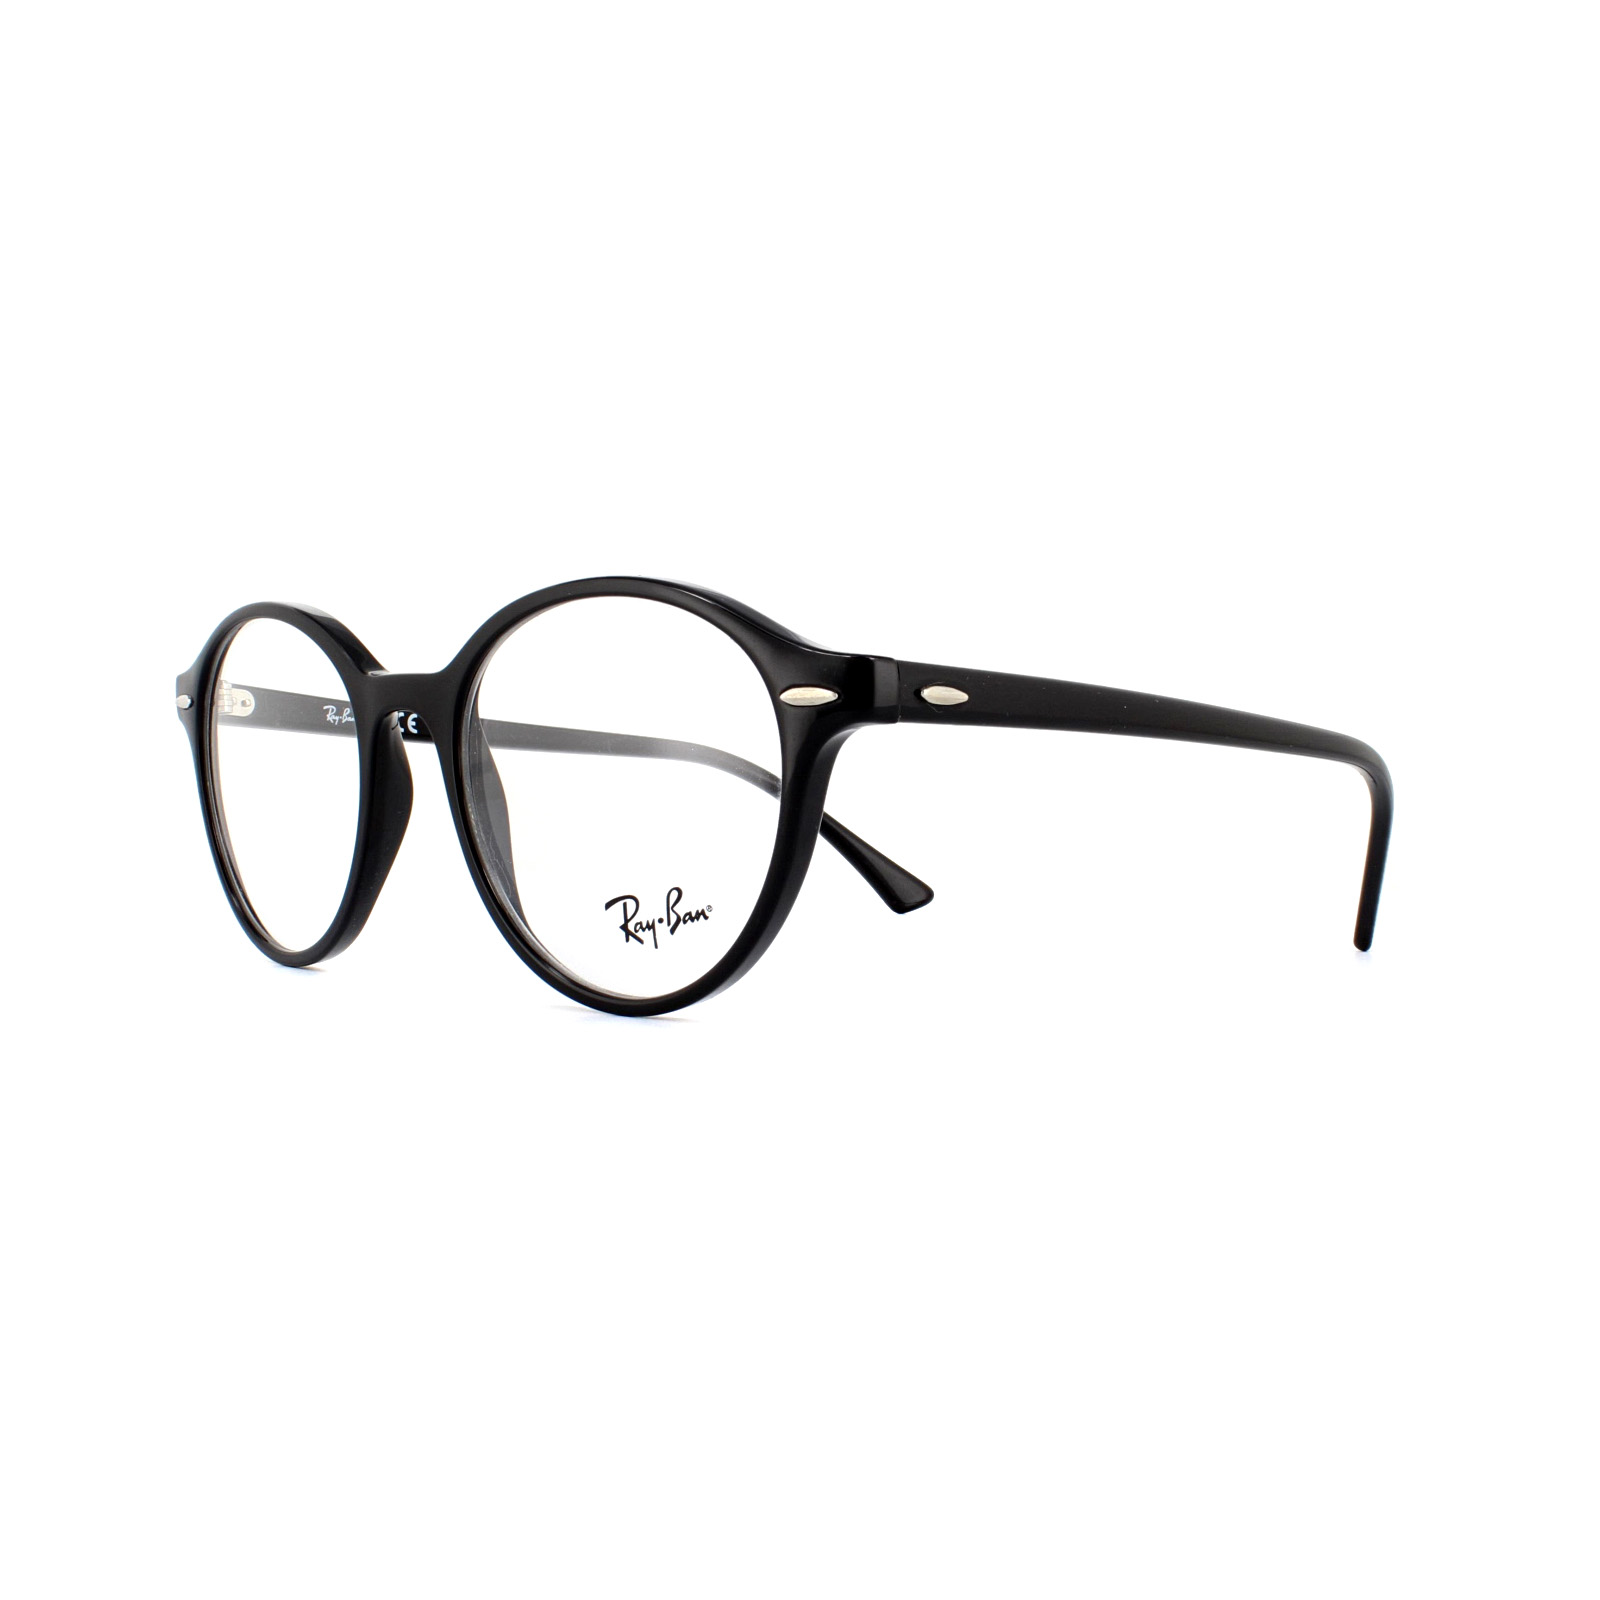 0175925f5f Details about Ray-Ban Glasses Frames 7118 Dean 2000 Black 50mm